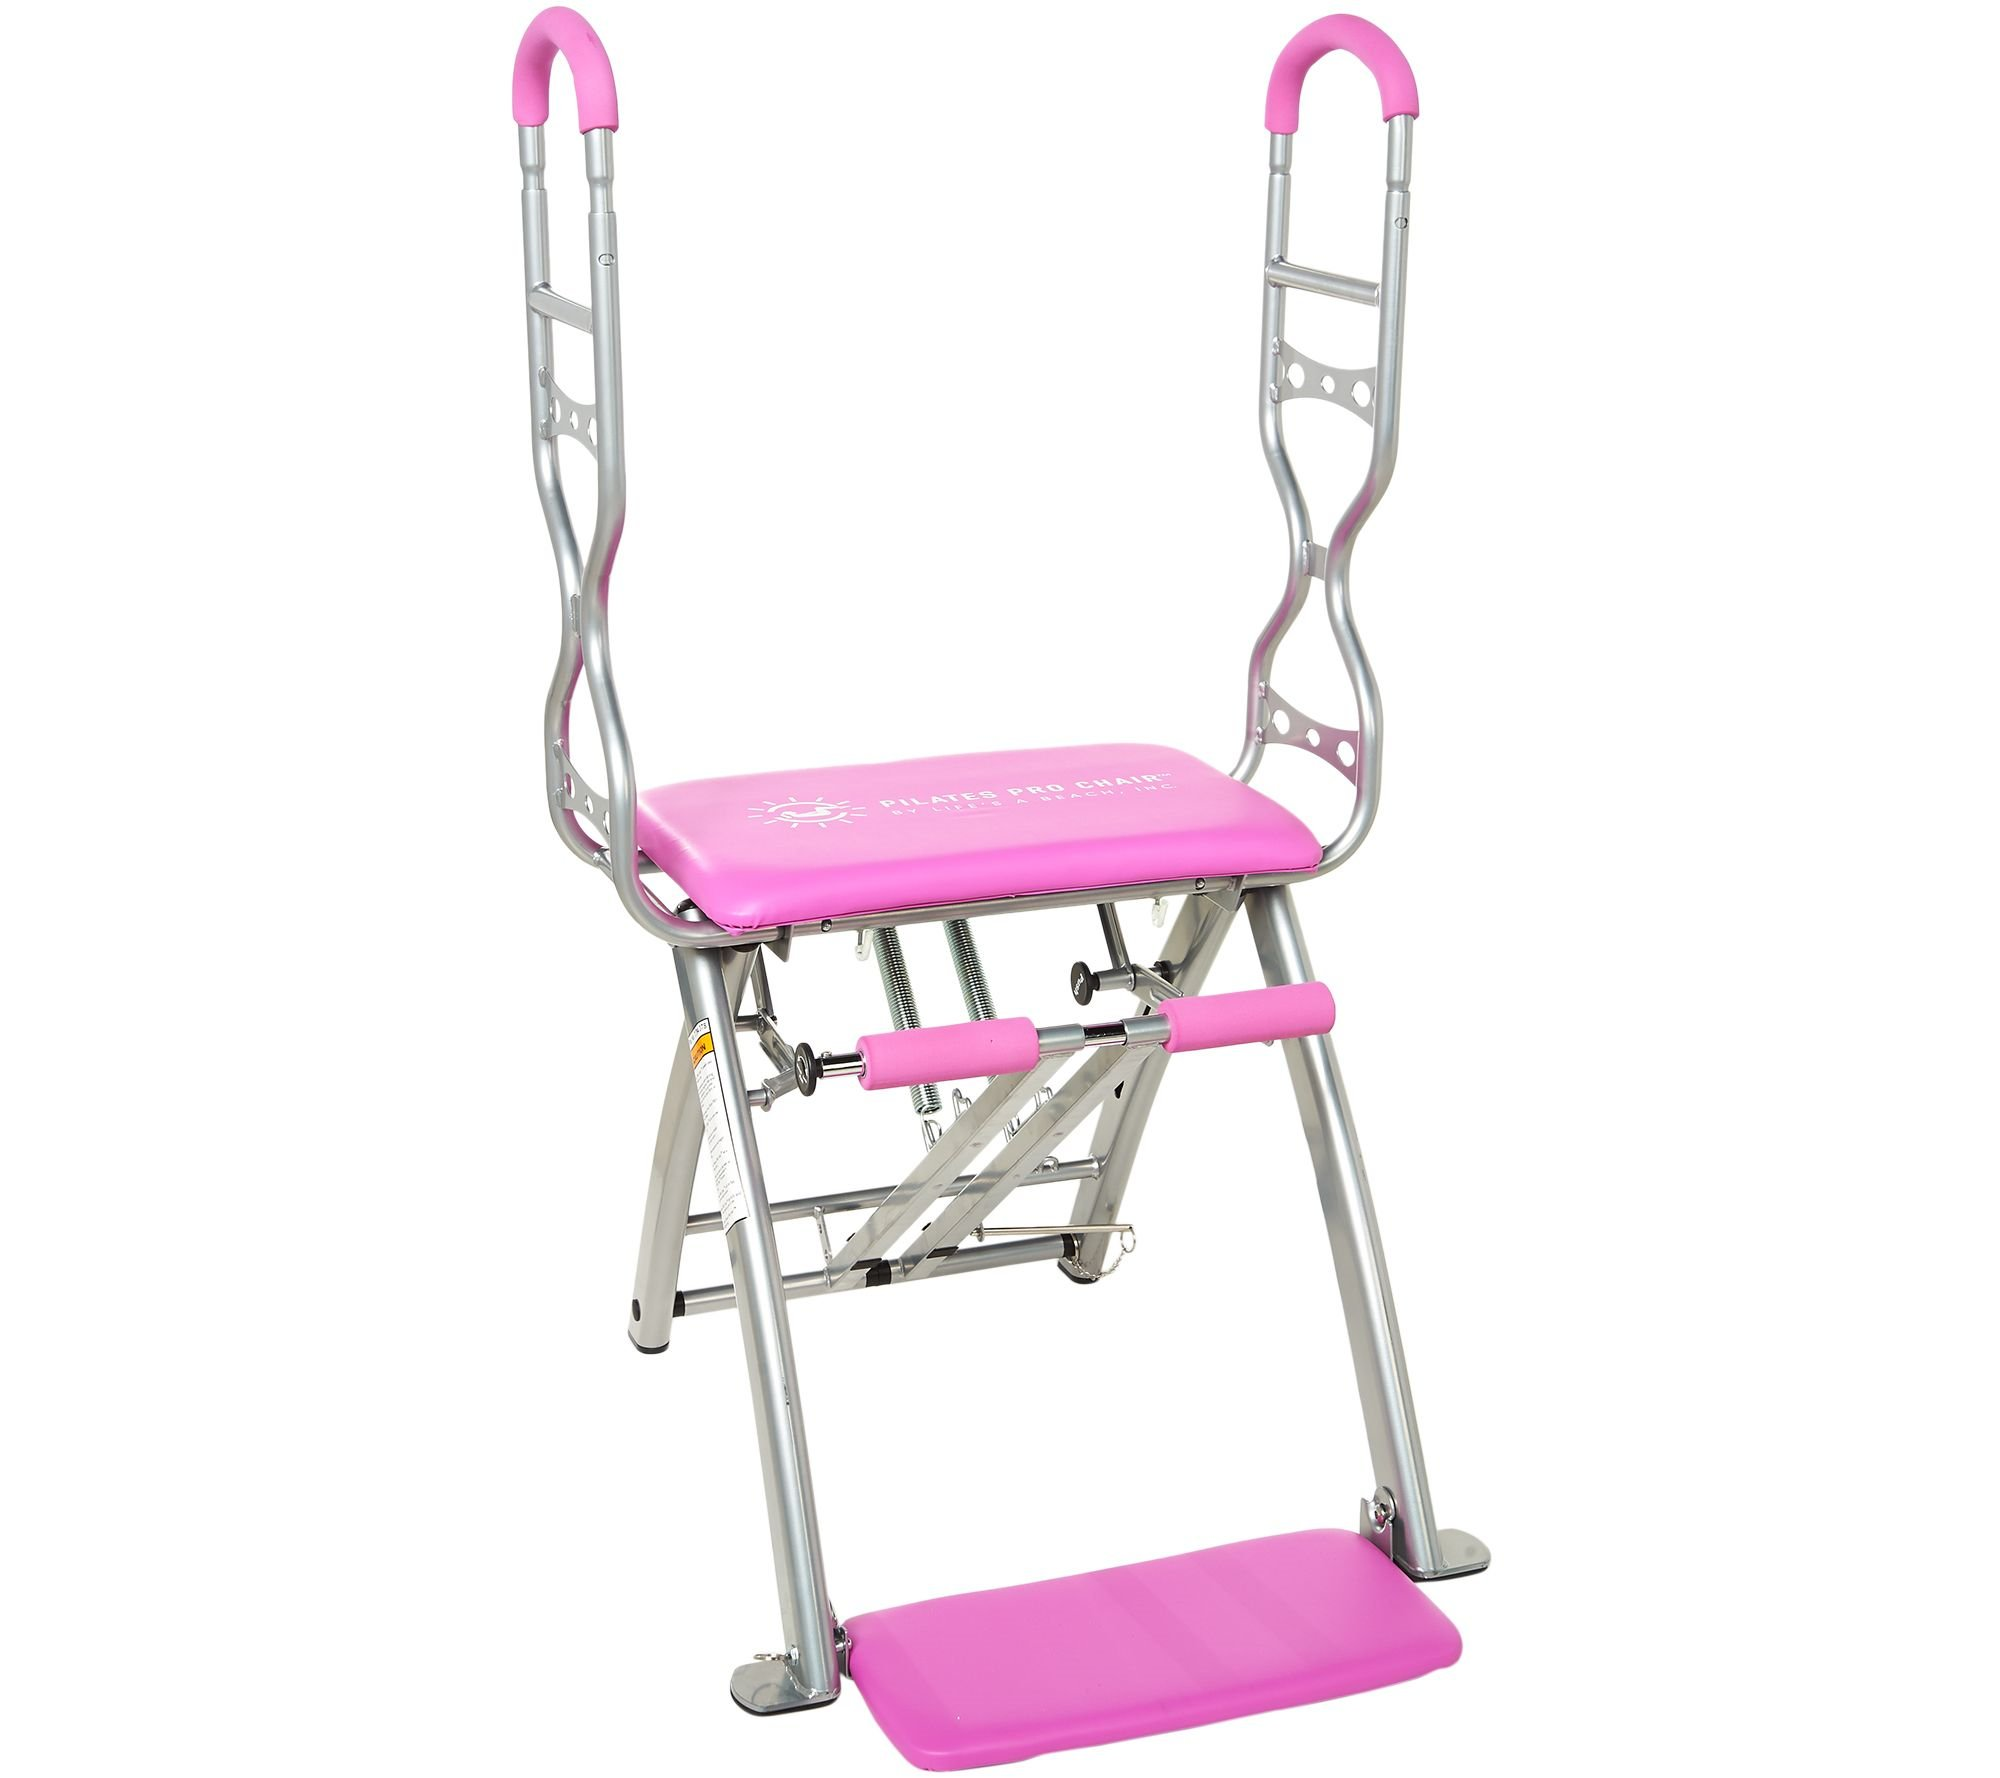 Pilates PRO Chair Max with Sculpting Handles by Life's a Beach With Videos Dream Body Workout (Pink)